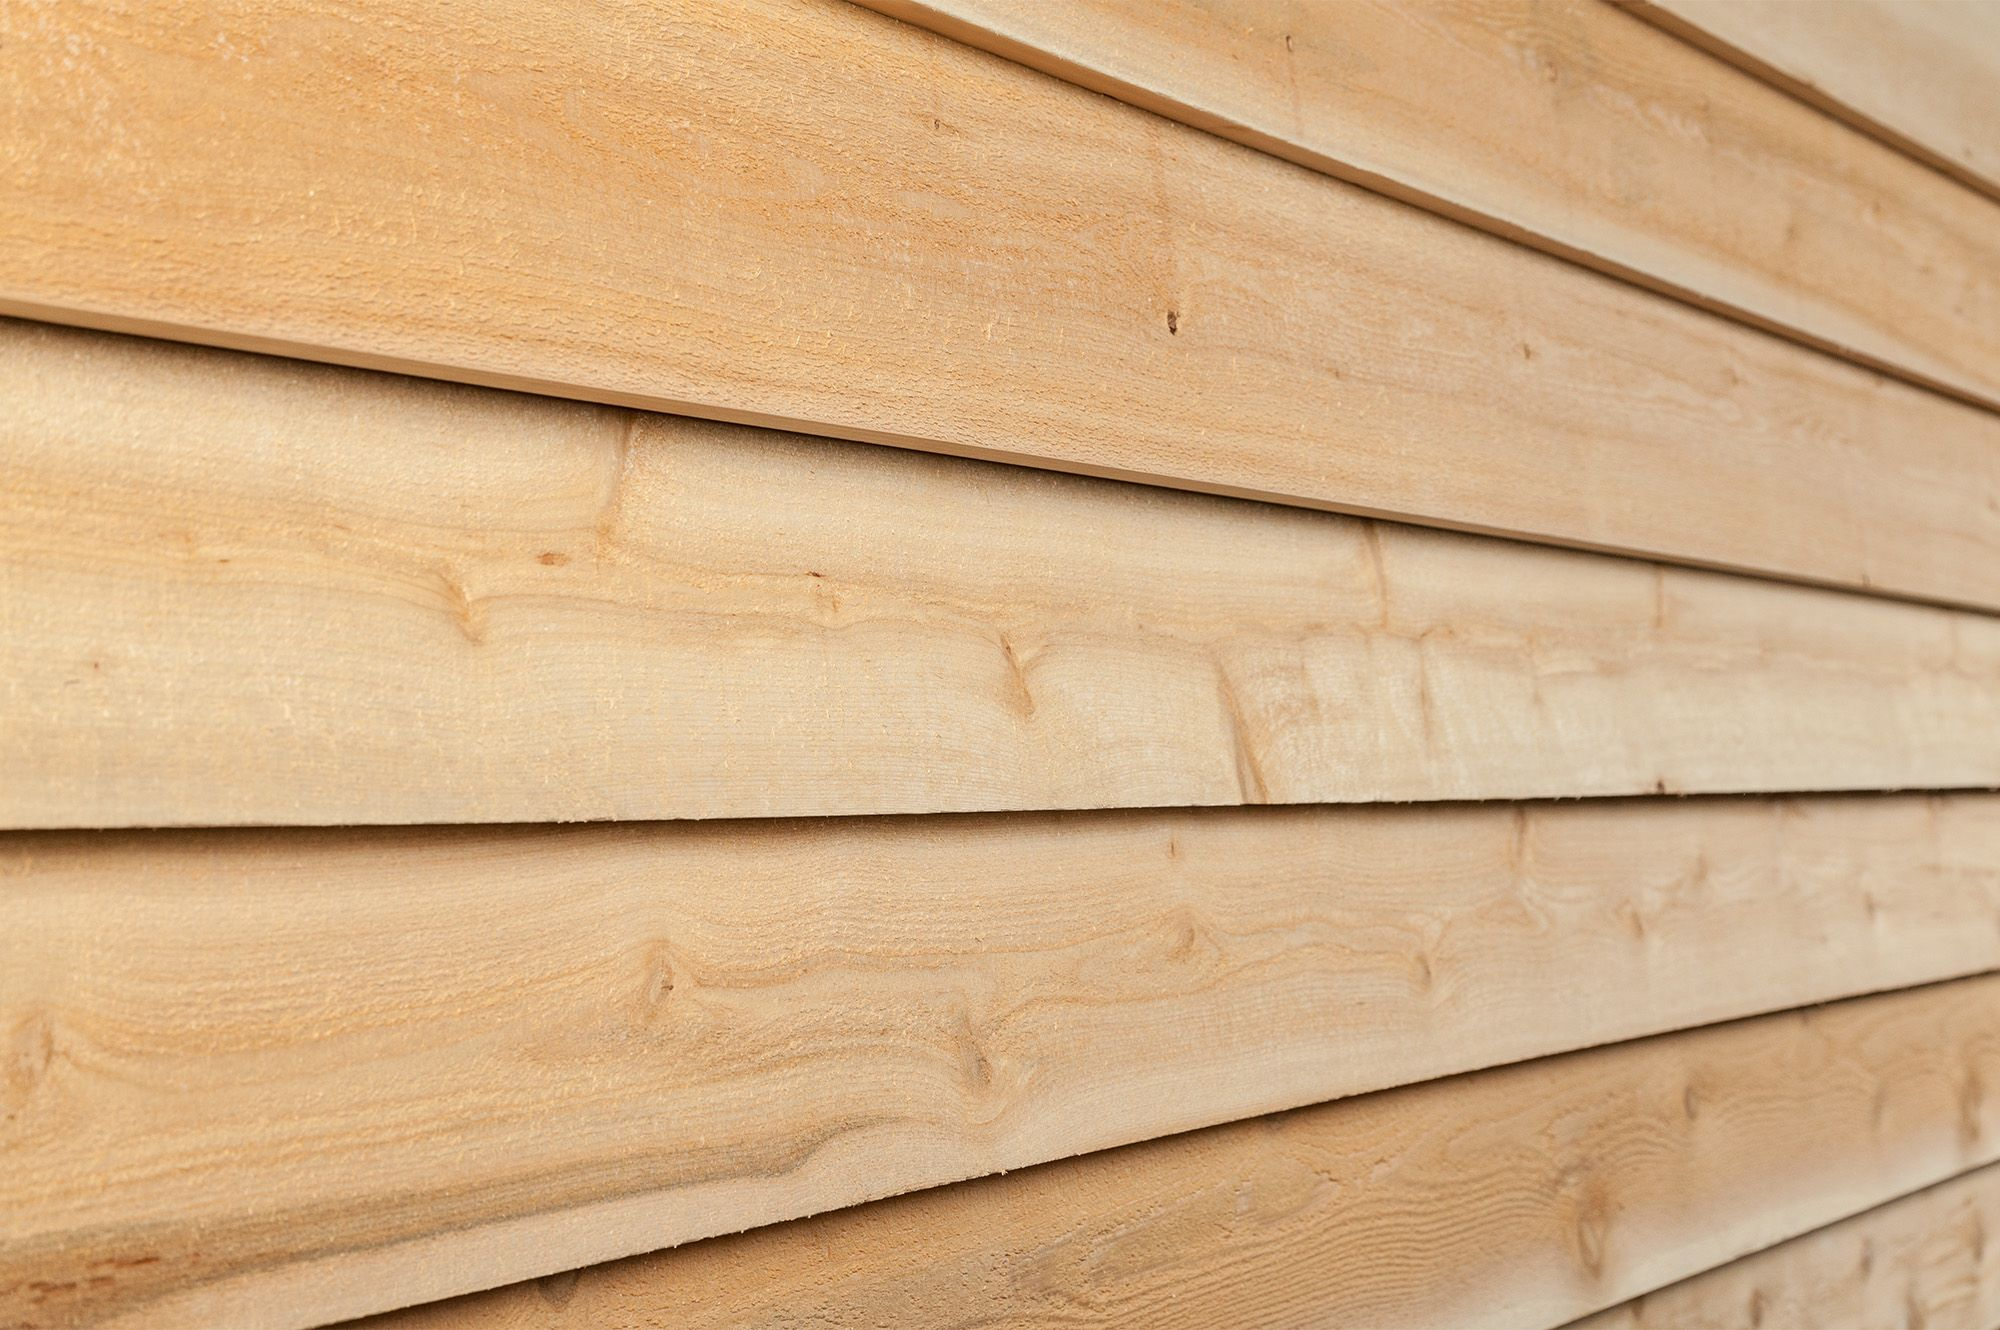 Builddirect Strongside Wood Siding Eastern White Cedar Siding Wood Siding Wood Panel Siding Cedar Siding